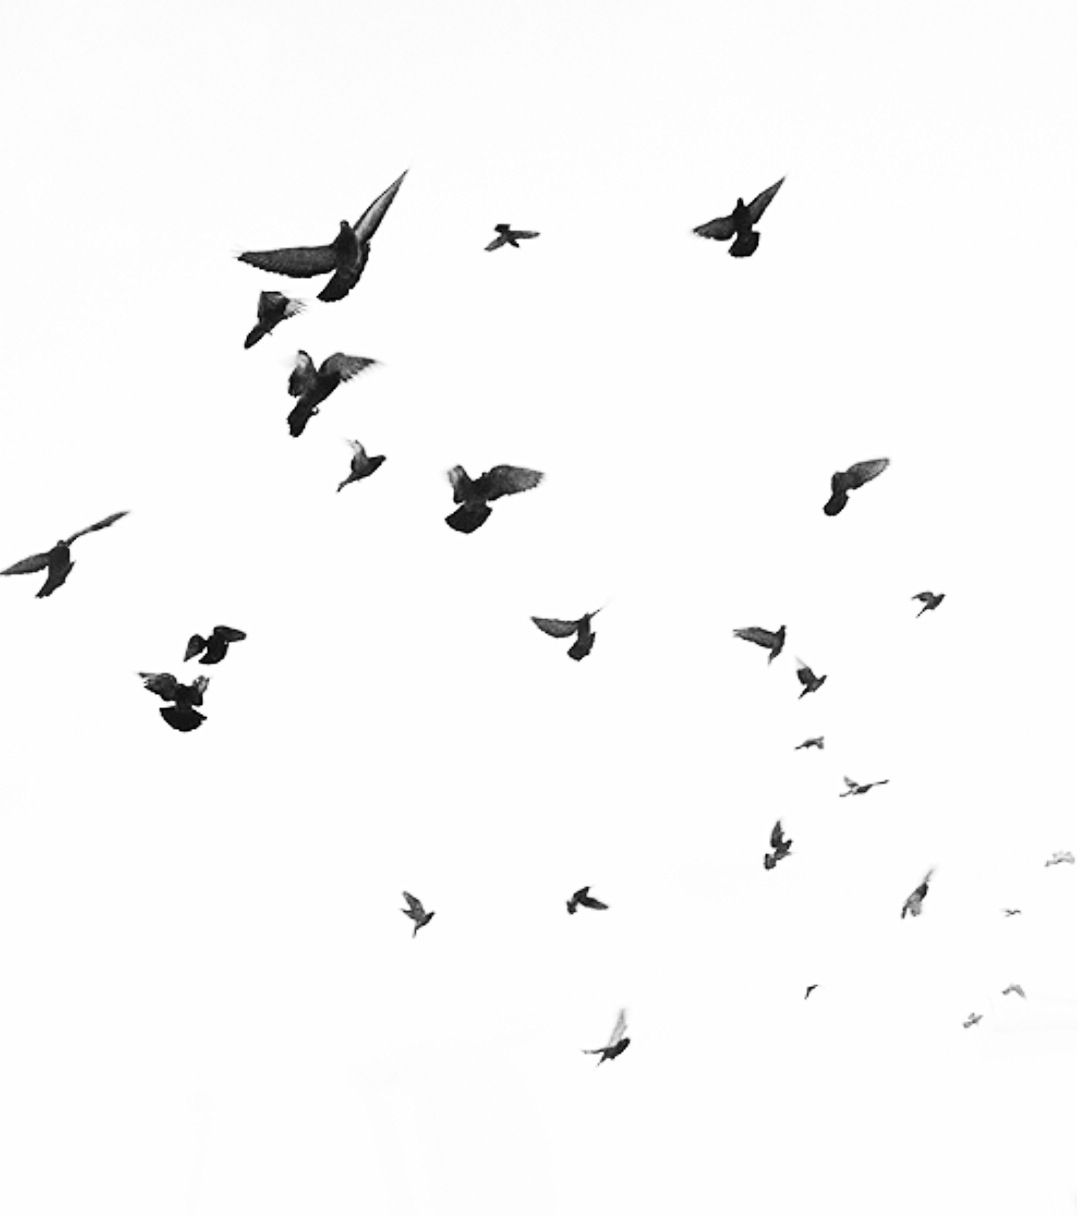 Pin By Starypastel On H E A L Birds Flying Photoshop Photography Techniques